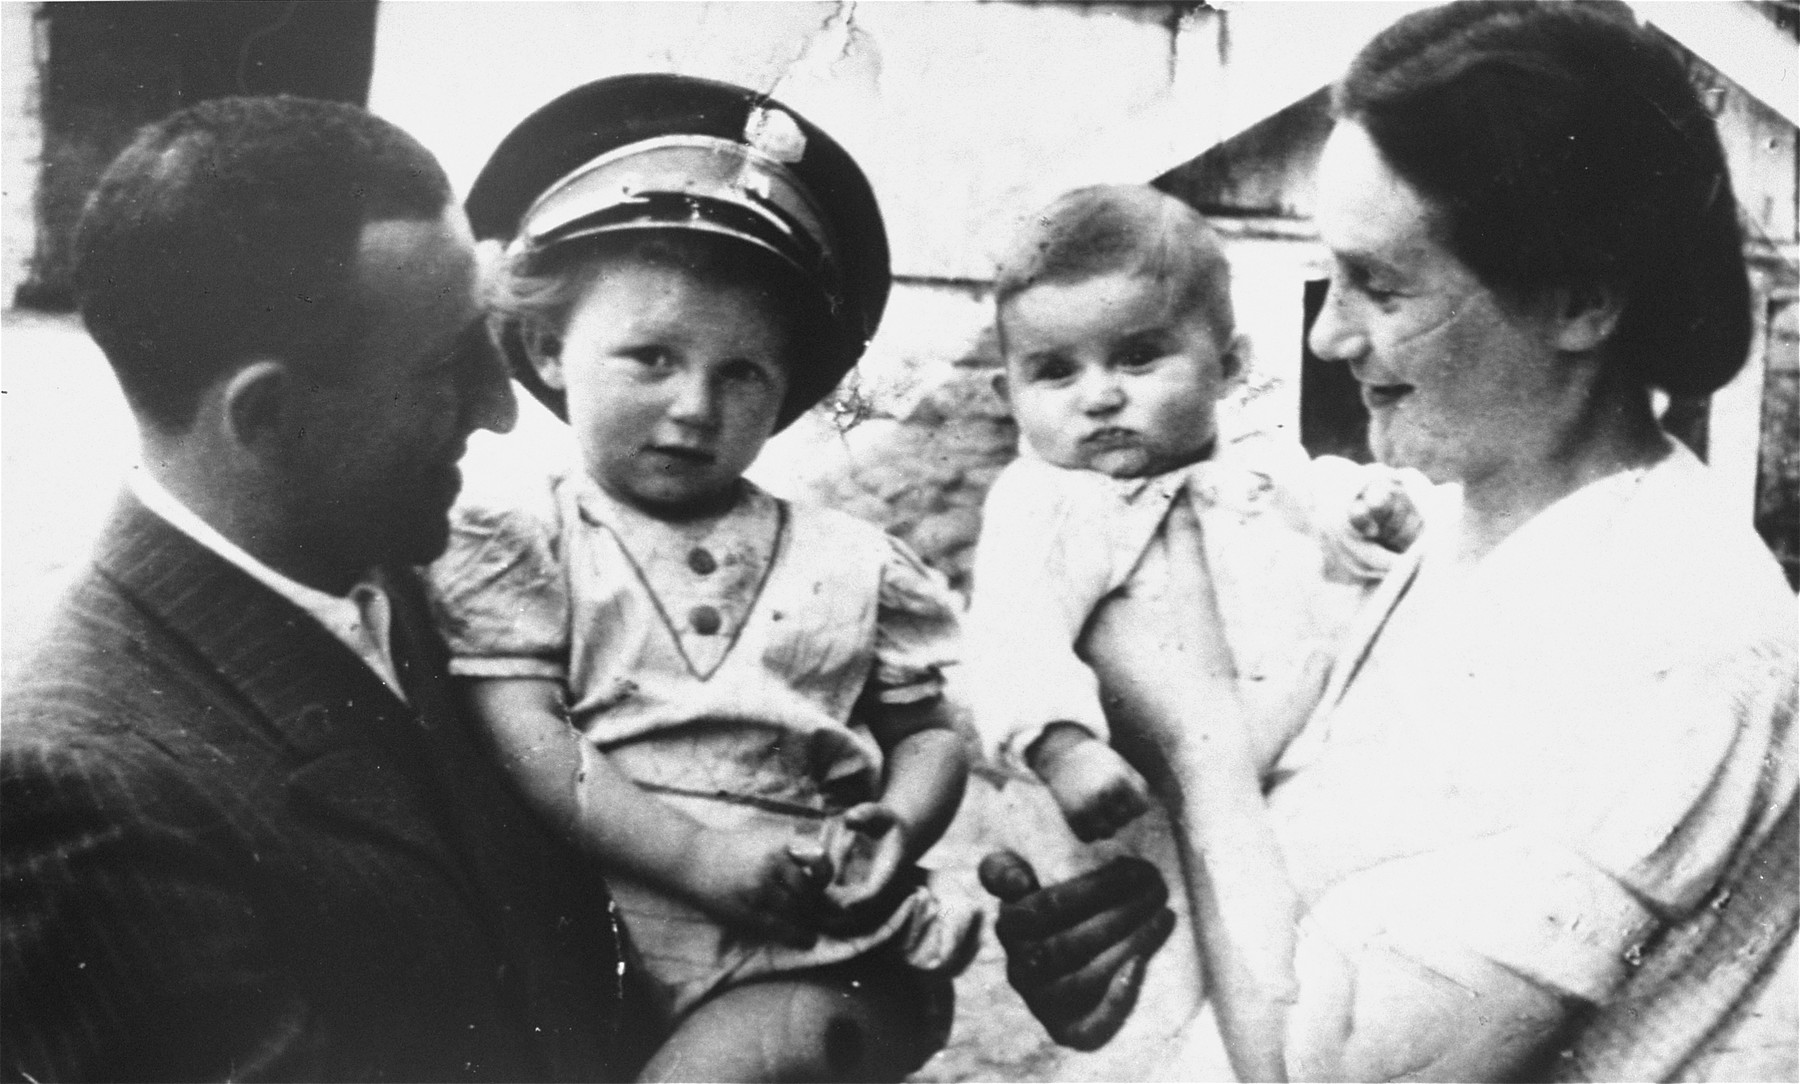 Portrait of the Tyrangiel family in the Minsk Mazowiecki ghetto.  Pictured from left to right are: Moshe, Guta, Esther and Rachel Tyrangiel.